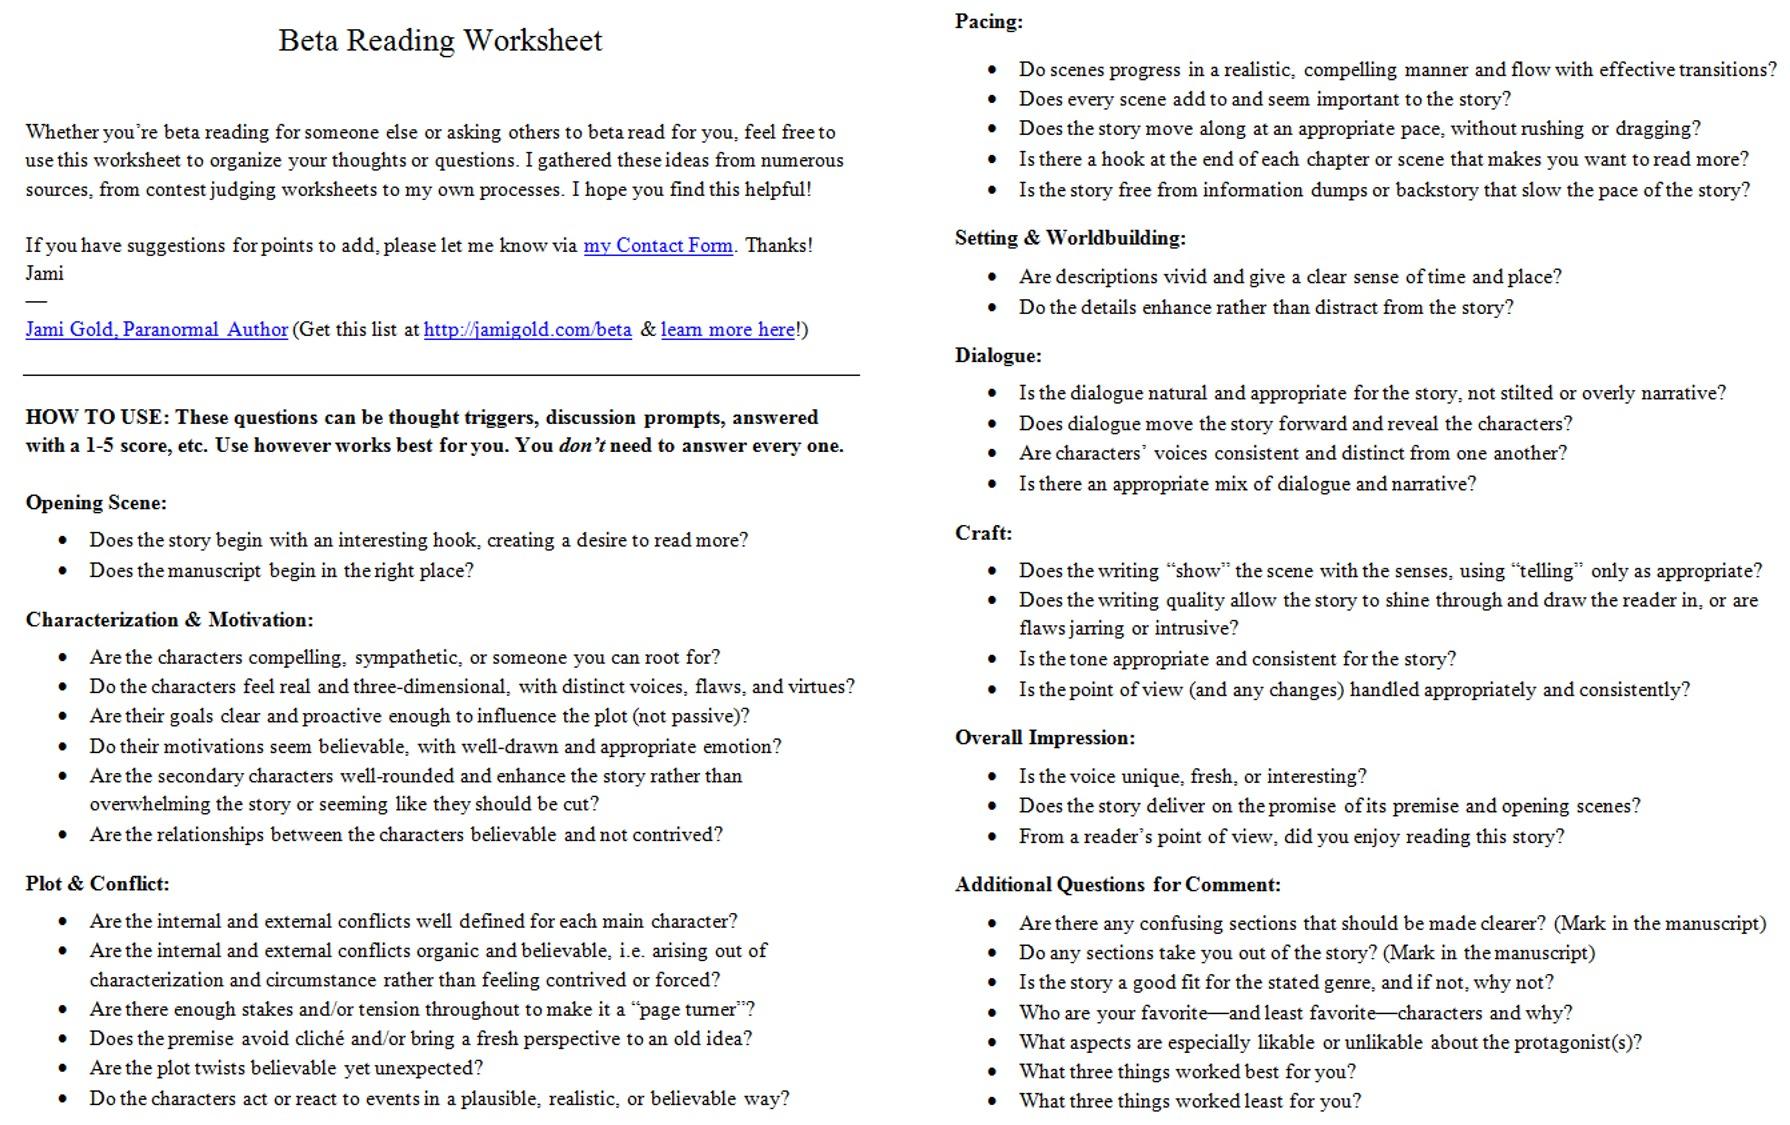 Proatmealus  Unique Worksheets For Writers  Jami Gold Paranormal Author With Fair Screen Shot Of The Twopage Beta Reading Worksheet With Beautiful Geometry Free Worksheets Also Worksheets On Transformations In Addition Factoring Polynomials Worksheet With Answer Key And Variables Worksheets As Well As Worksheets For Th Grade Reading Additionally Valentine Preschool Worksheets From Jamigoldcom With Proatmealus  Fair Worksheets For Writers  Jami Gold Paranormal Author With Beautiful Screen Shot Of The Twopage Beta Reading Worksheet And Unique Geometry Free Worksheets Also Worksheets On Transformations In Addition Factoring Polynomials Worksheet With Answer Key From Jamigoldcom